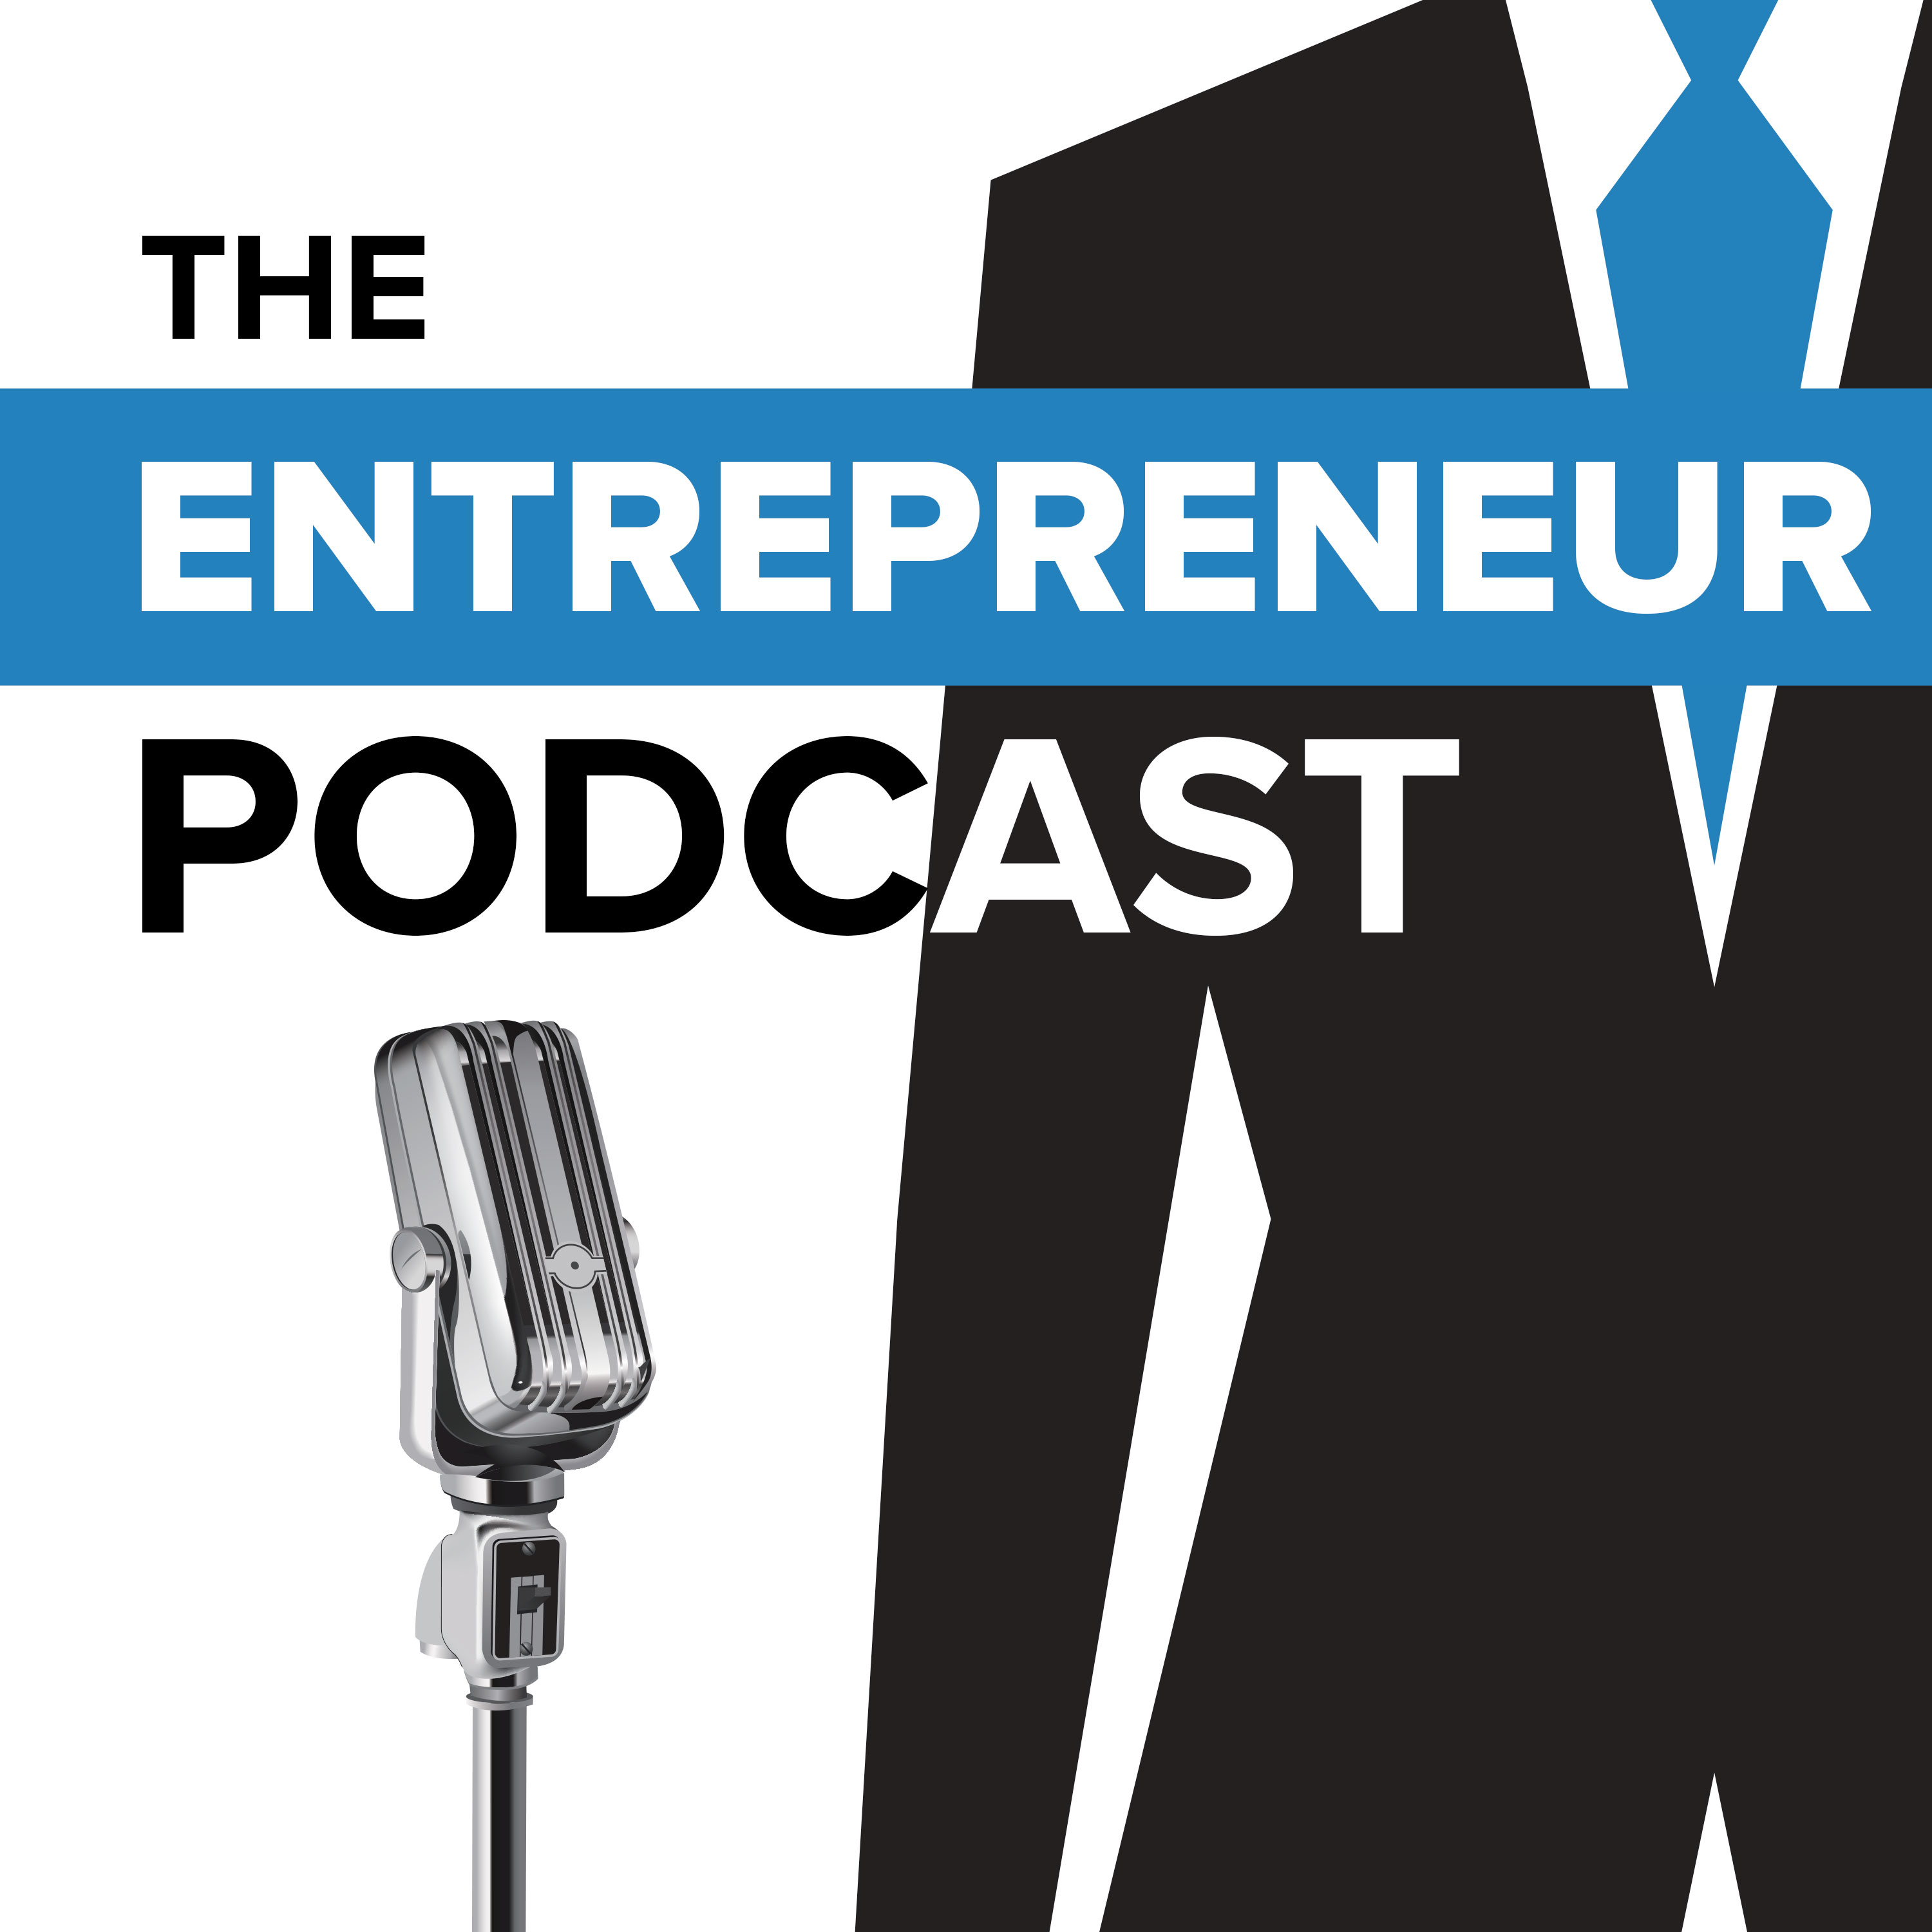 The Entrepreneur Podcast - Interviews with Asian and Indian, Startups, Entrepreneurs, Founders, Incubators, Mentors